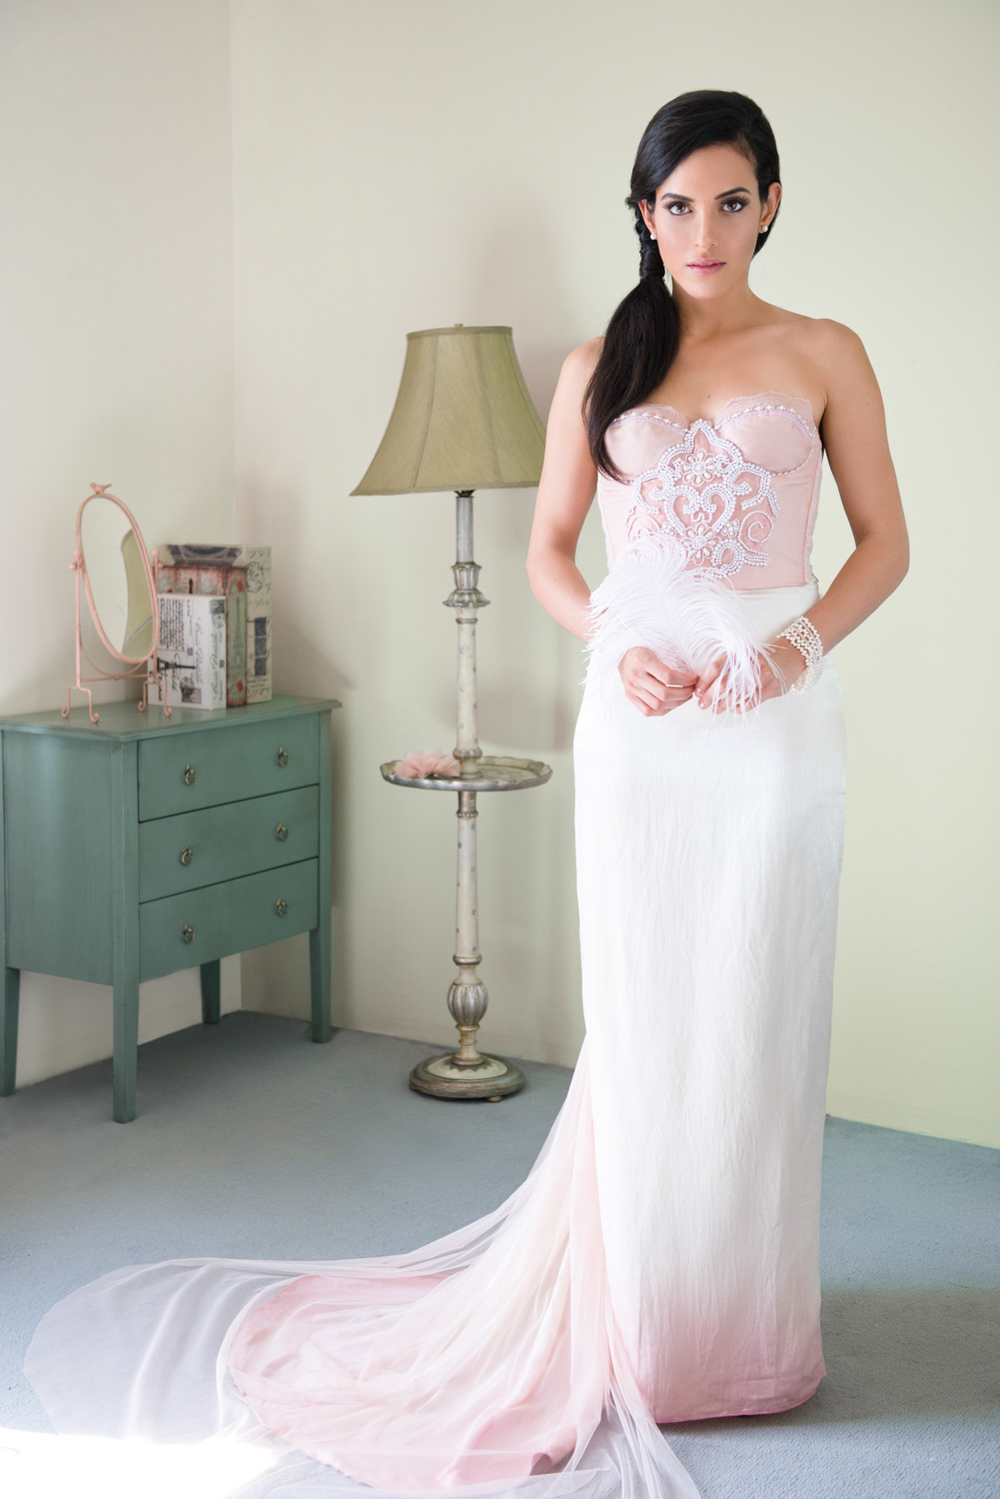 Bridal Fashion Photograhy 021.jpg